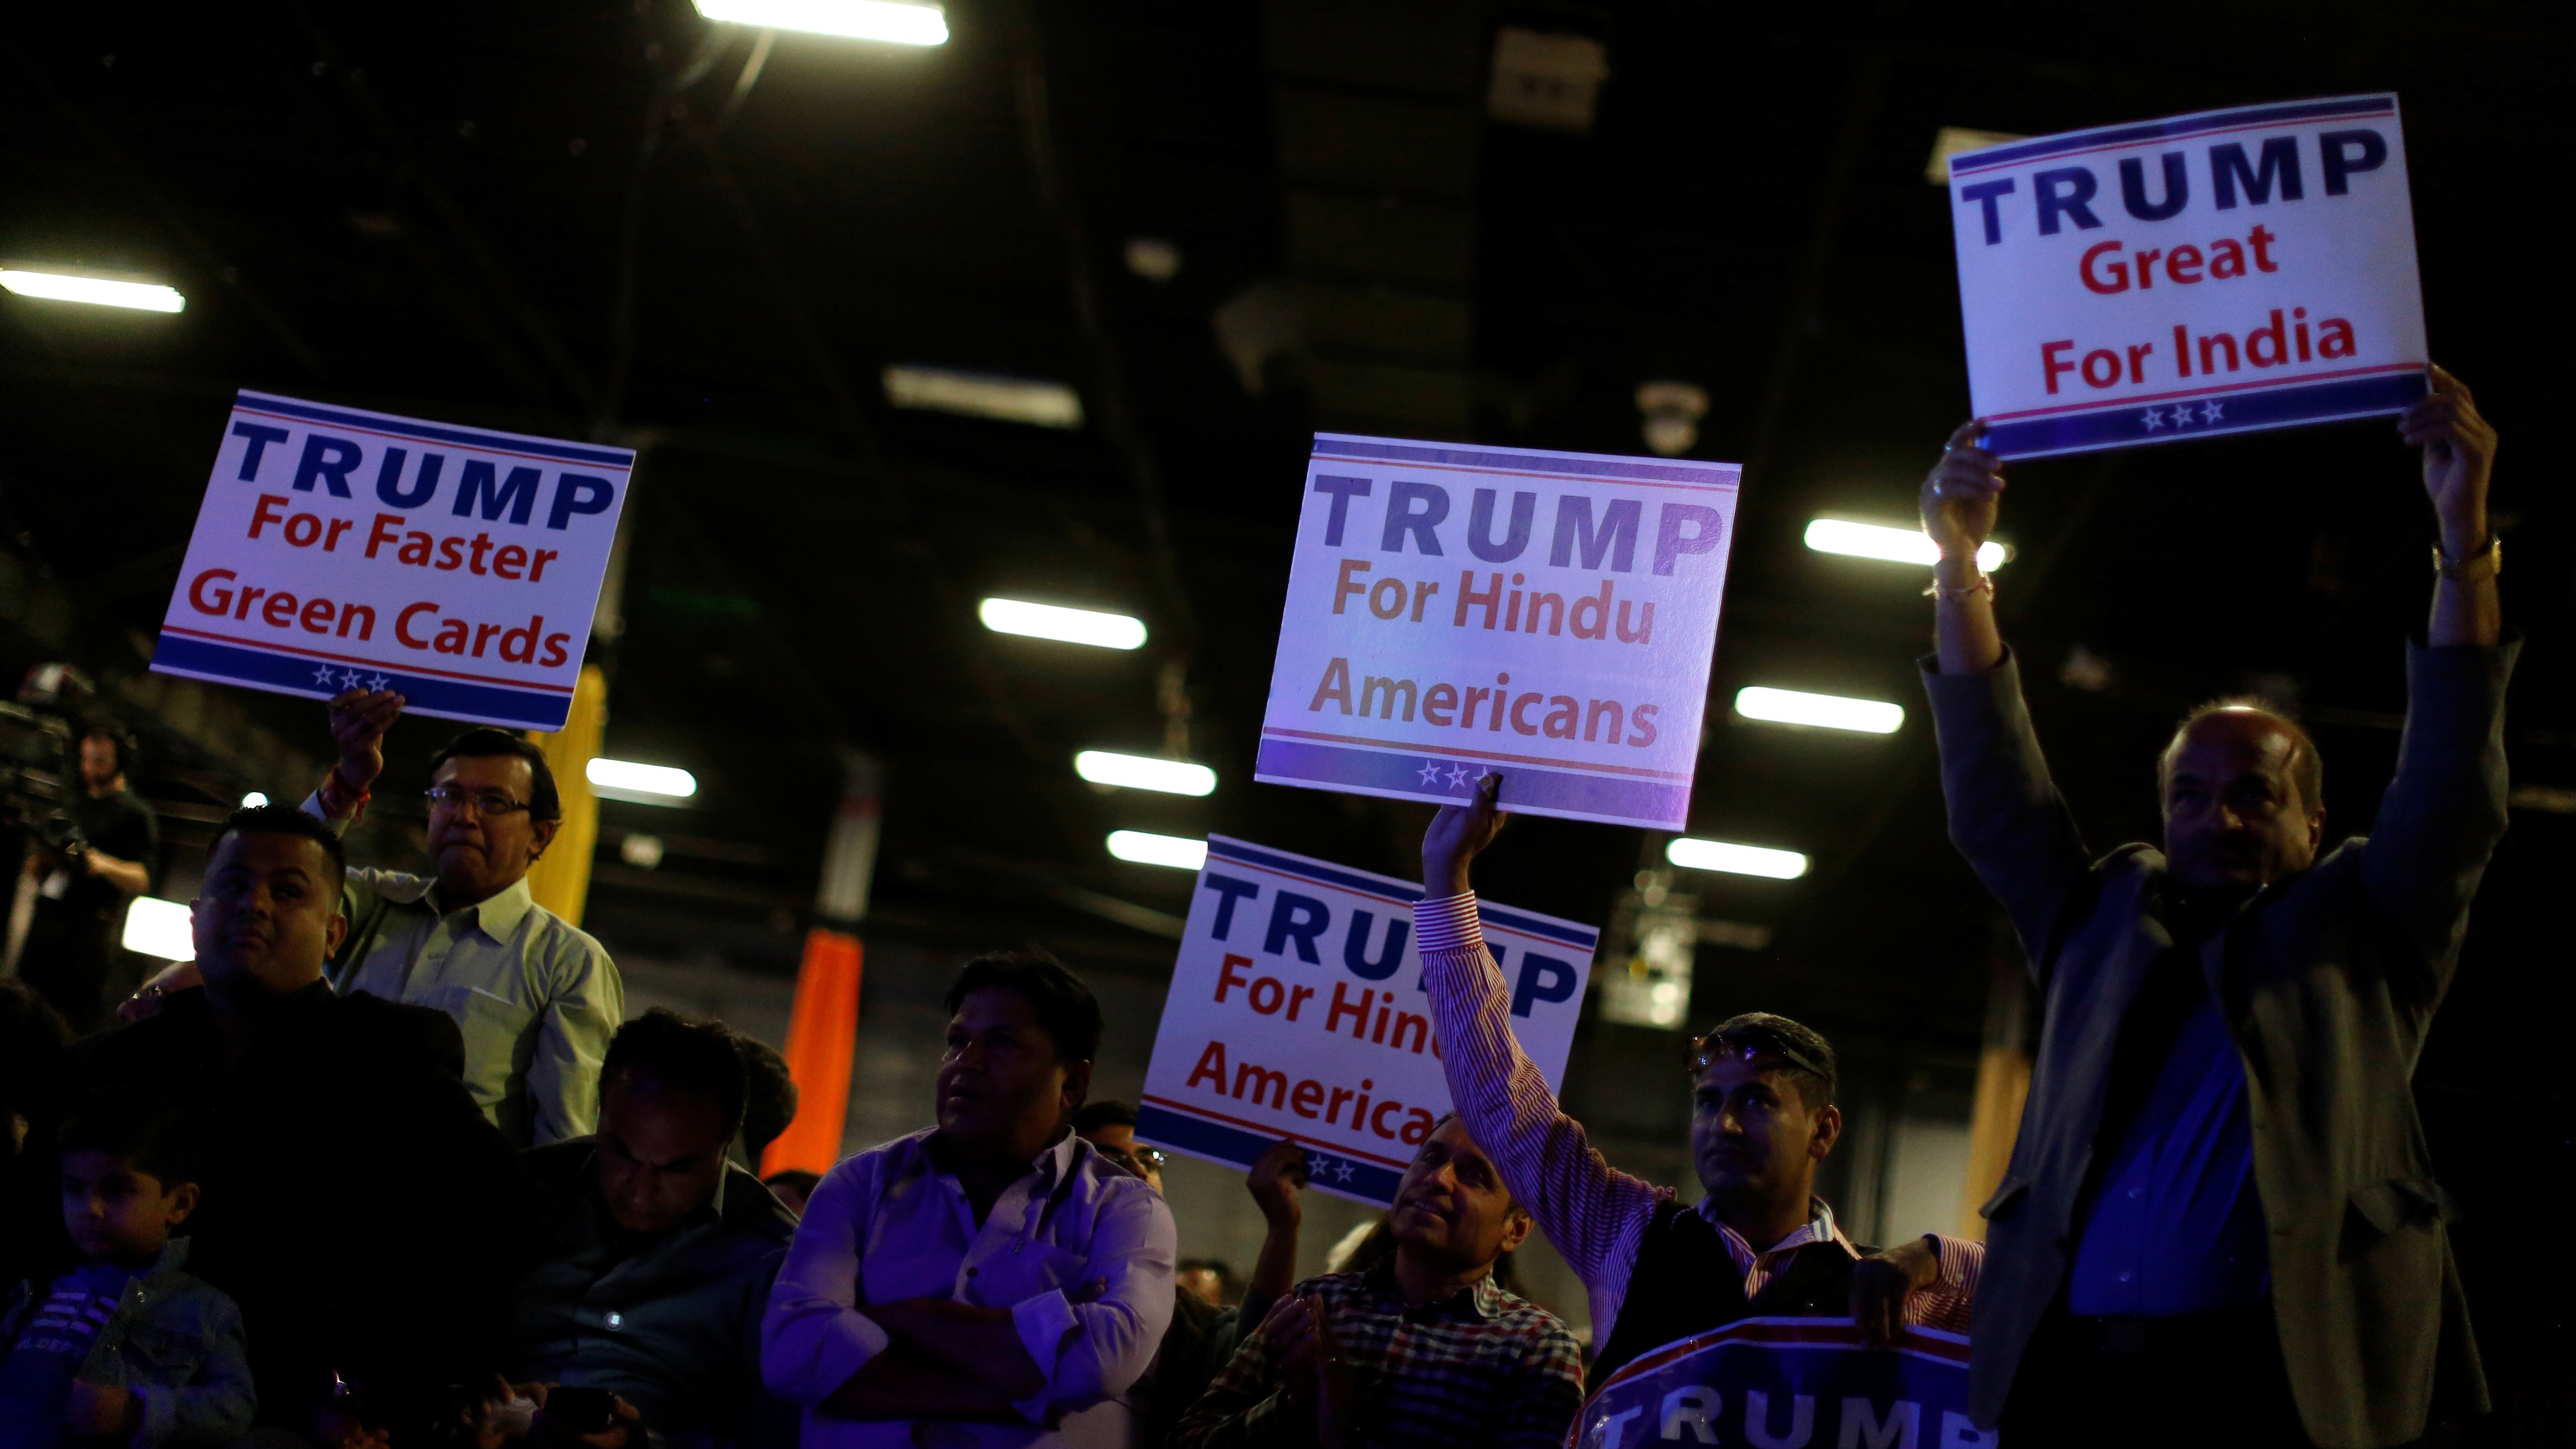 People wait for Republican presidential nominee Donald Trump to take the stage at a Bollywood-themed charity concert put on by the Republican Hindu Coalition in Edison, New Jersey, U.S. October 15, 2016. REUTERS/Jonathan Ernst - RTX2P03S